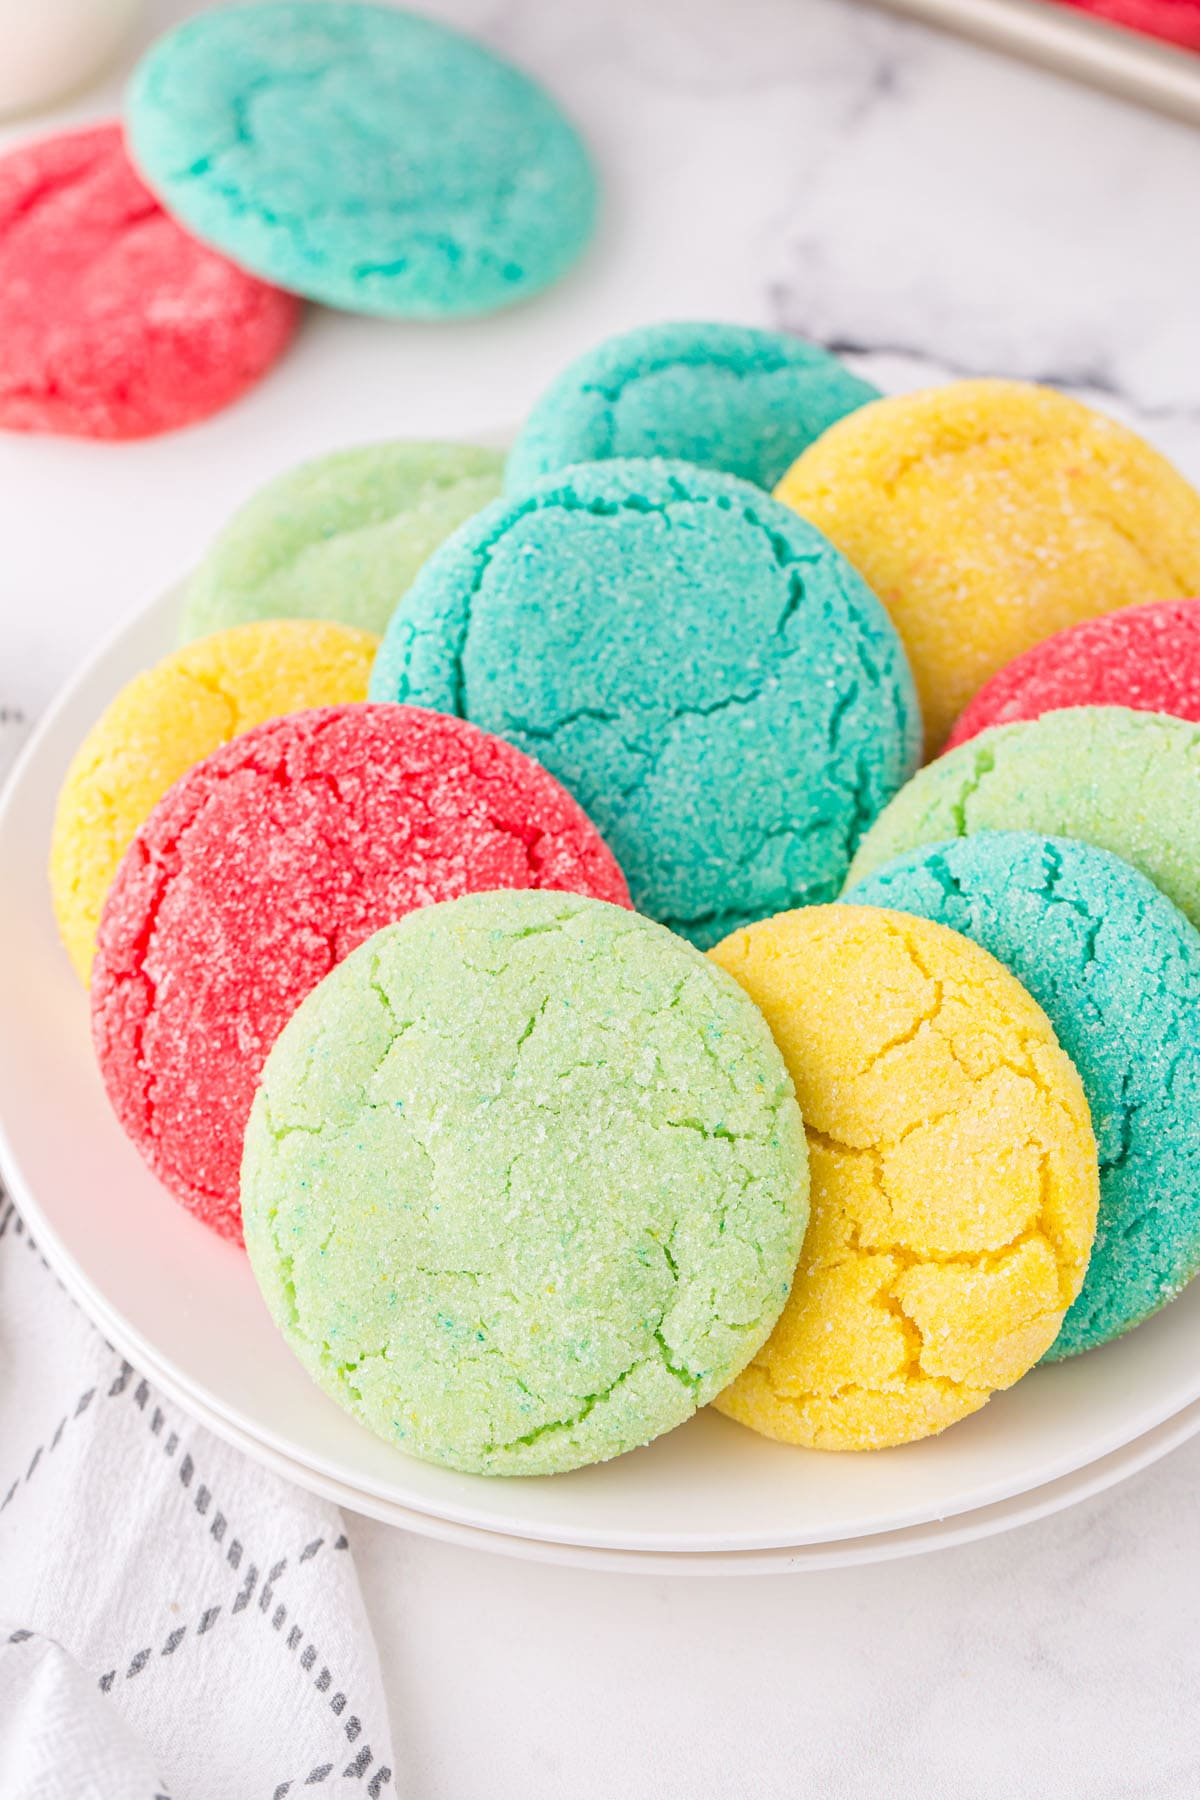 jello cookies on a plate